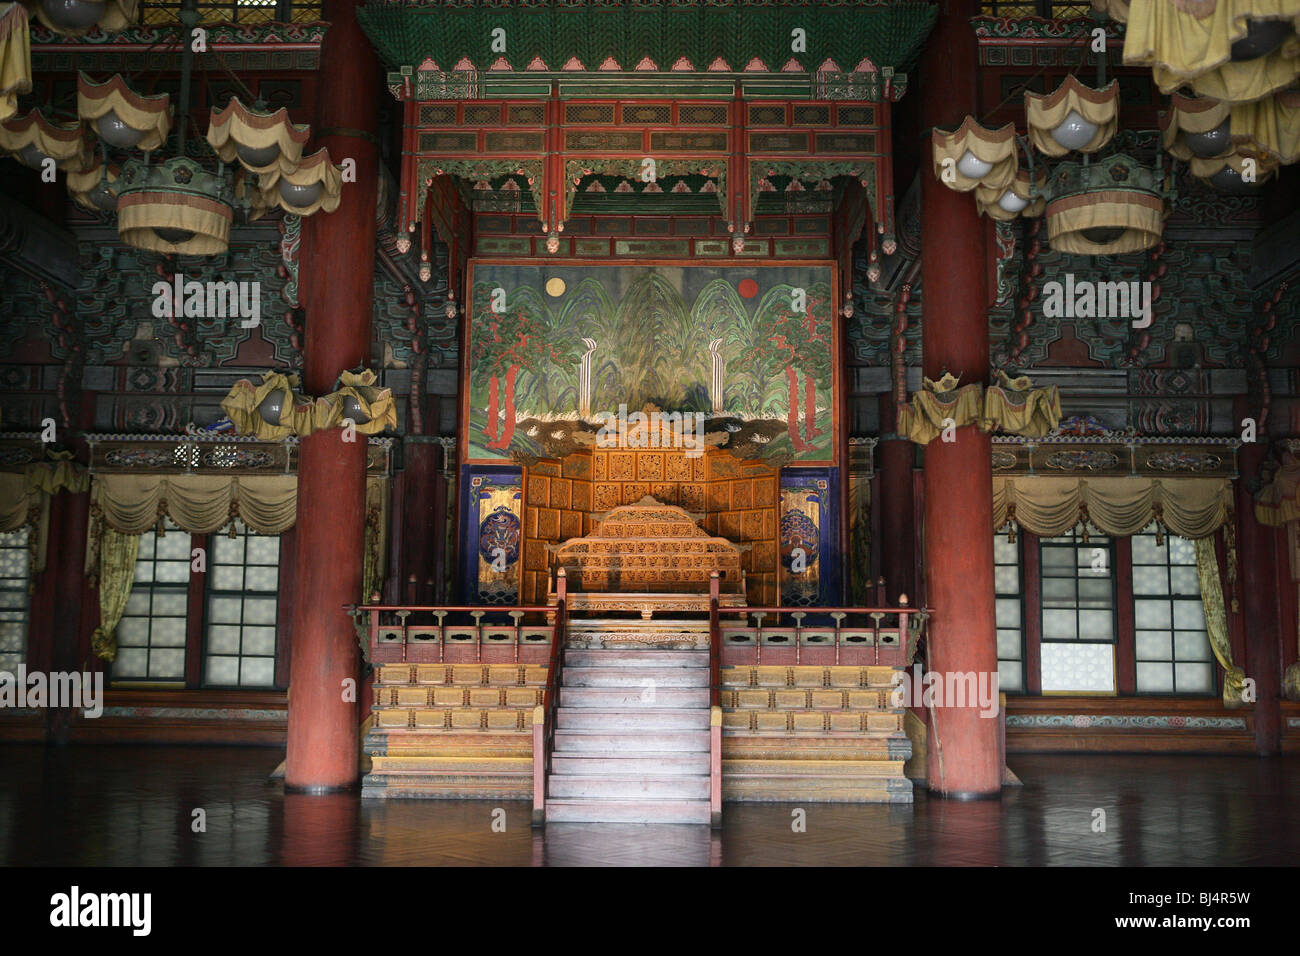 SOUTH KOREA. SEOUL. Changdeokgung Palace, built in the fifteenth century by the Joseon Dynasty. Unesco World Heritage - Stock Image